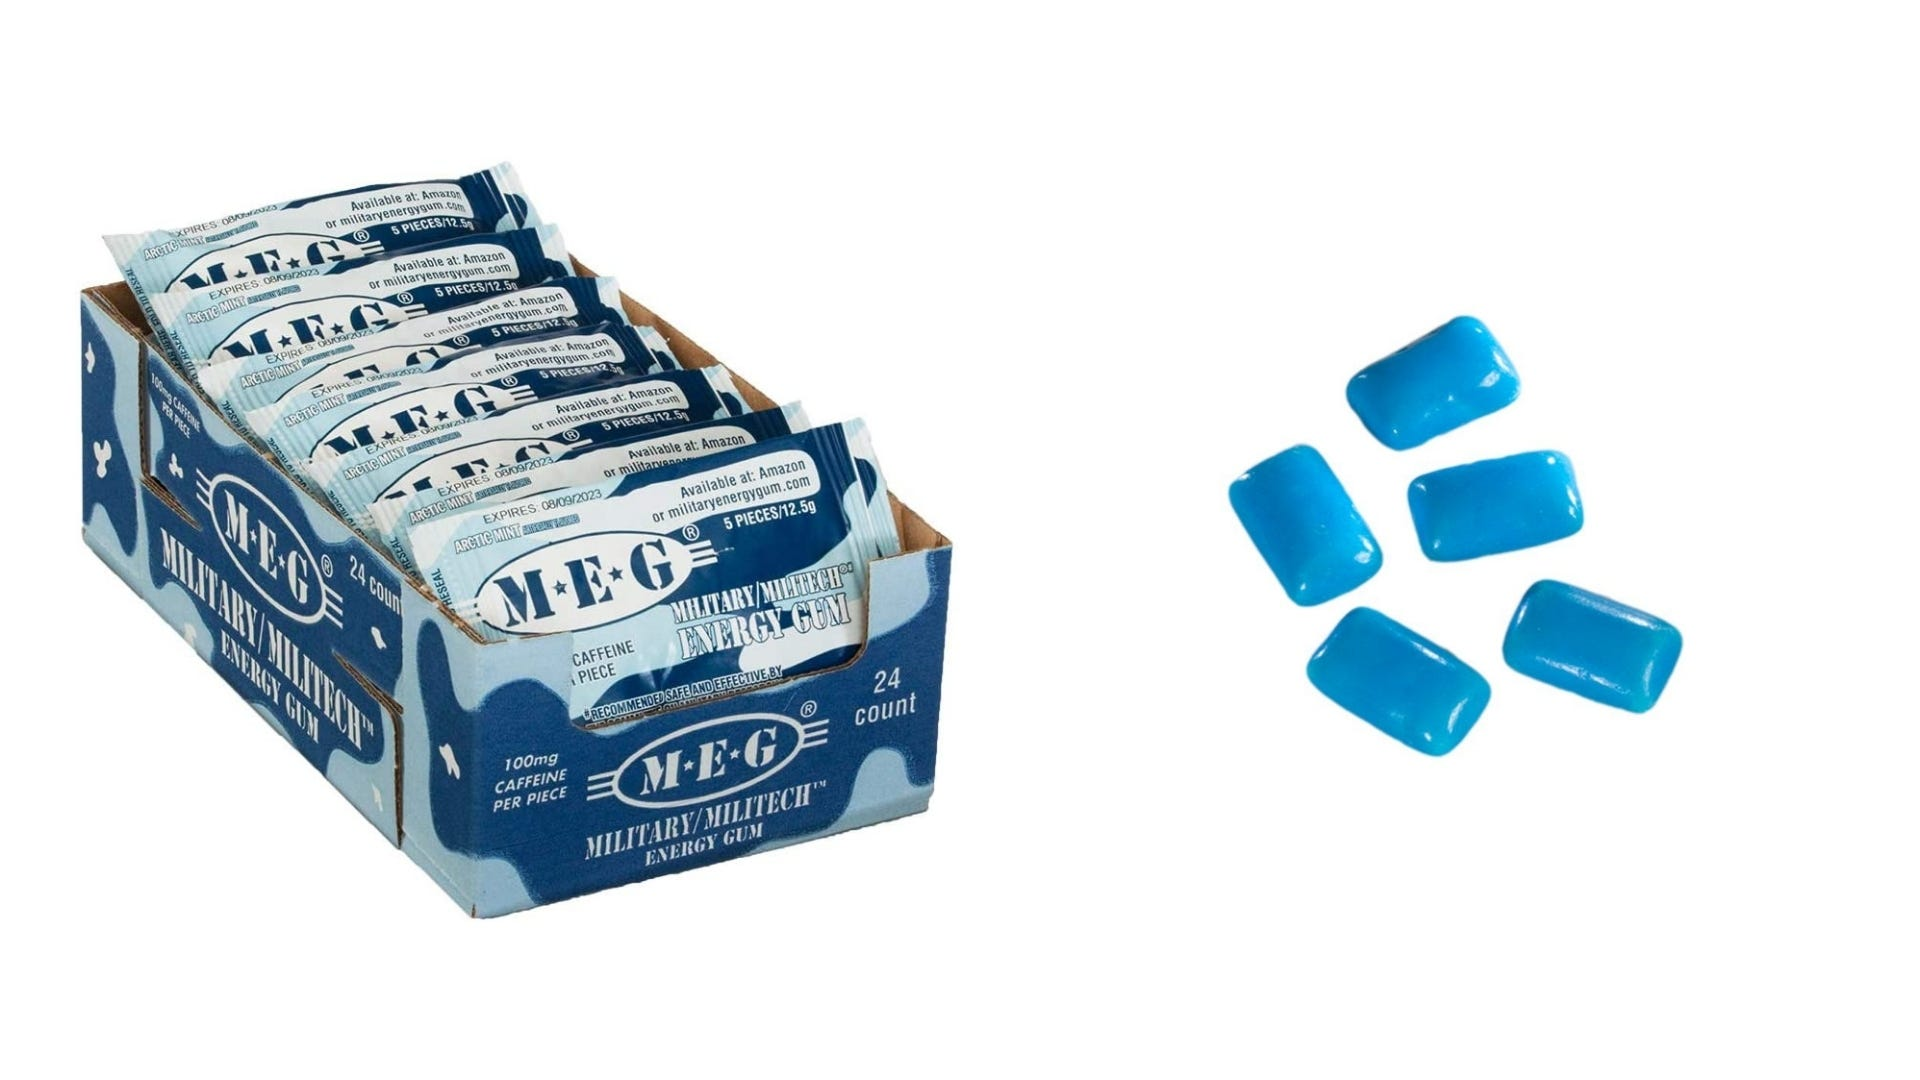 A box of caffeinated gum and five pieces of blue gum.